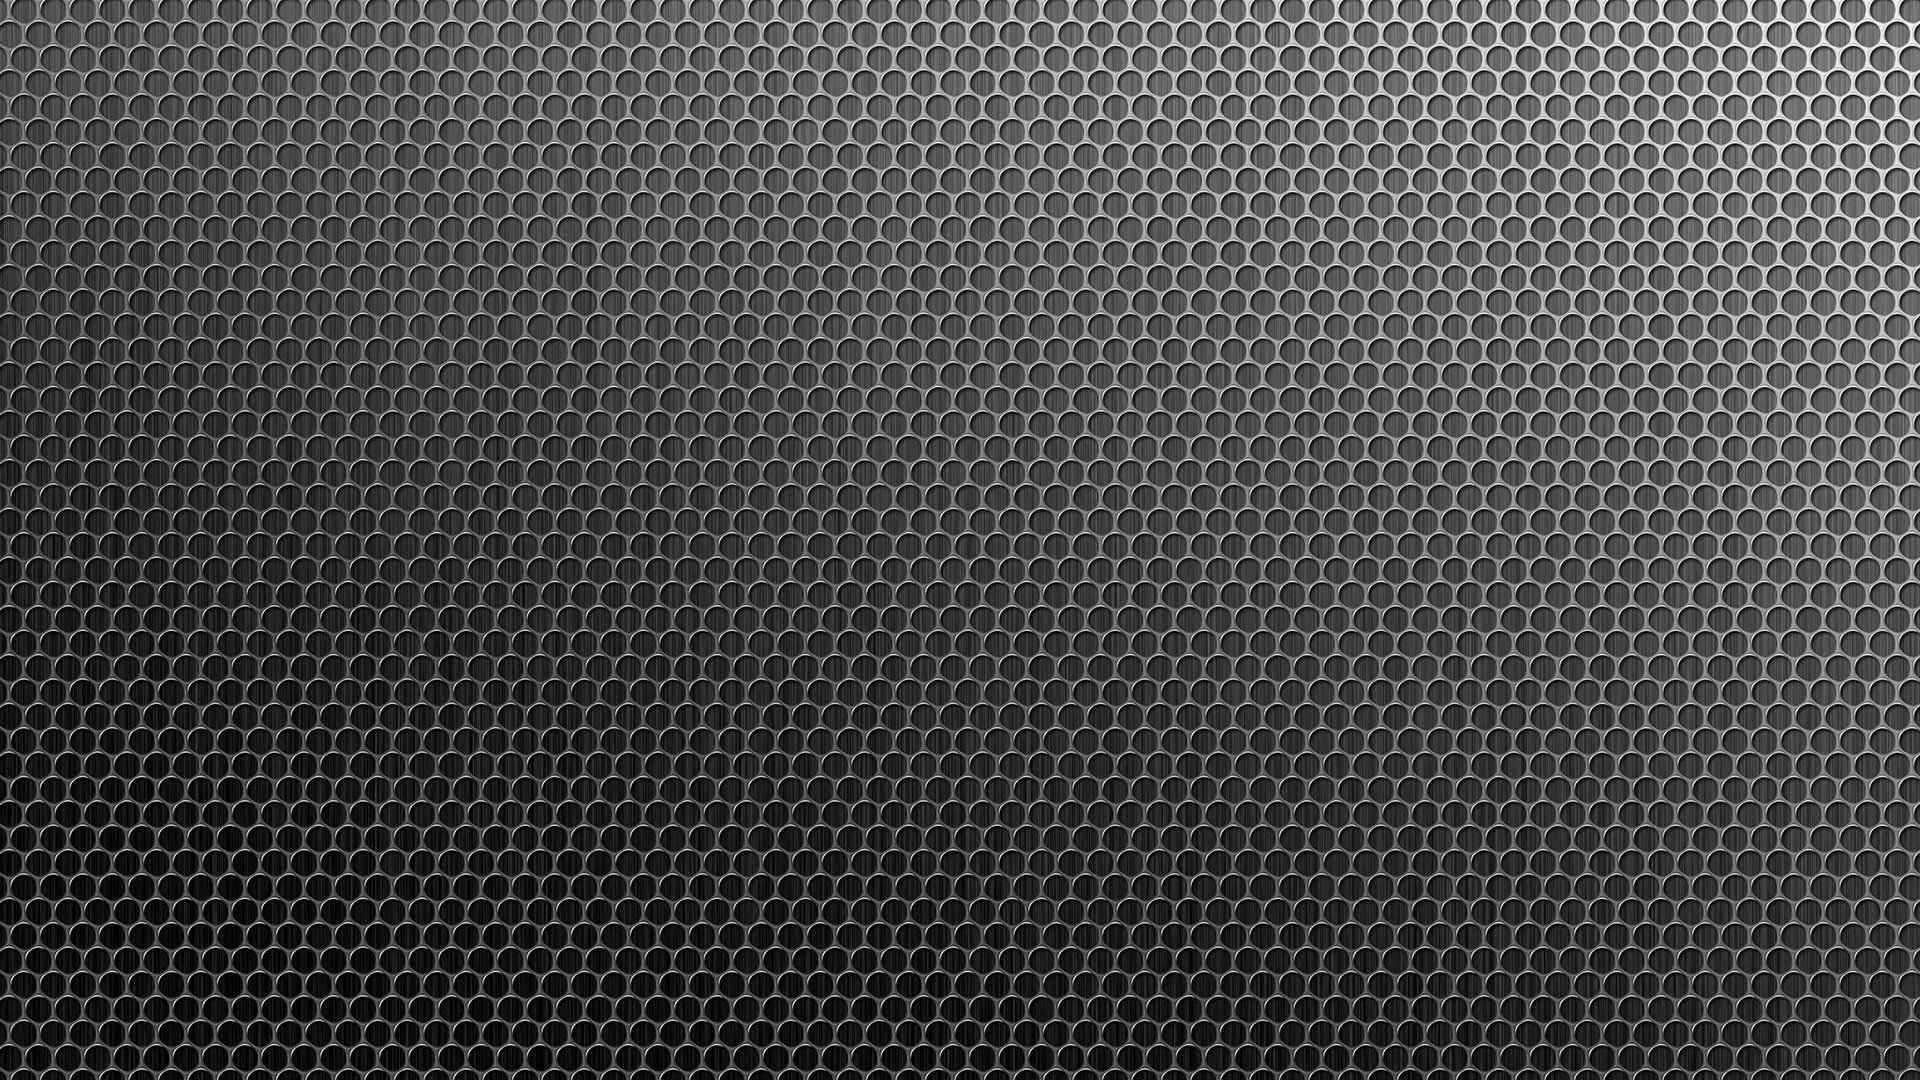 Black and white wallpapers grey abstract wallpaper html code - Black Honeycomb Wallpaper Wallpapersafari